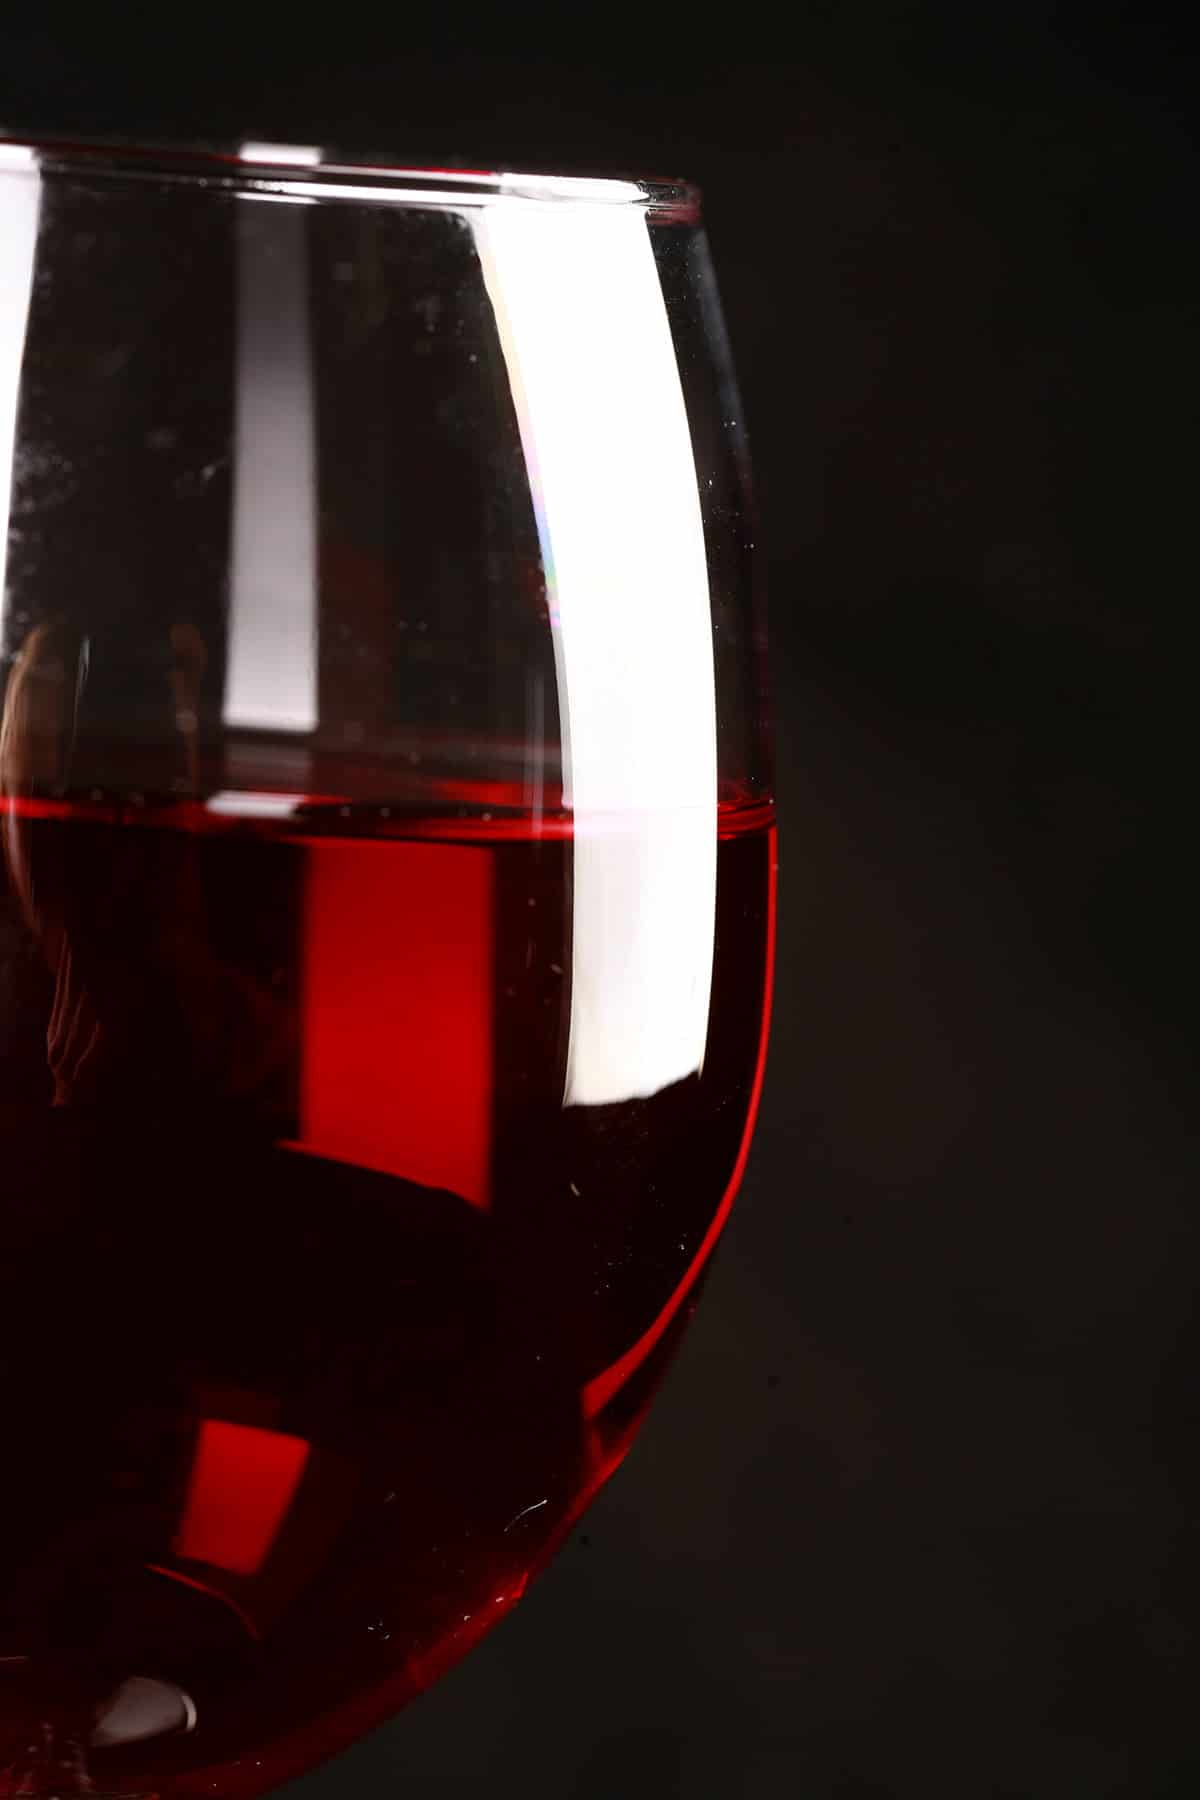 Close up photo of a glass of brilliantly red cranberry wine, in front of a black background.